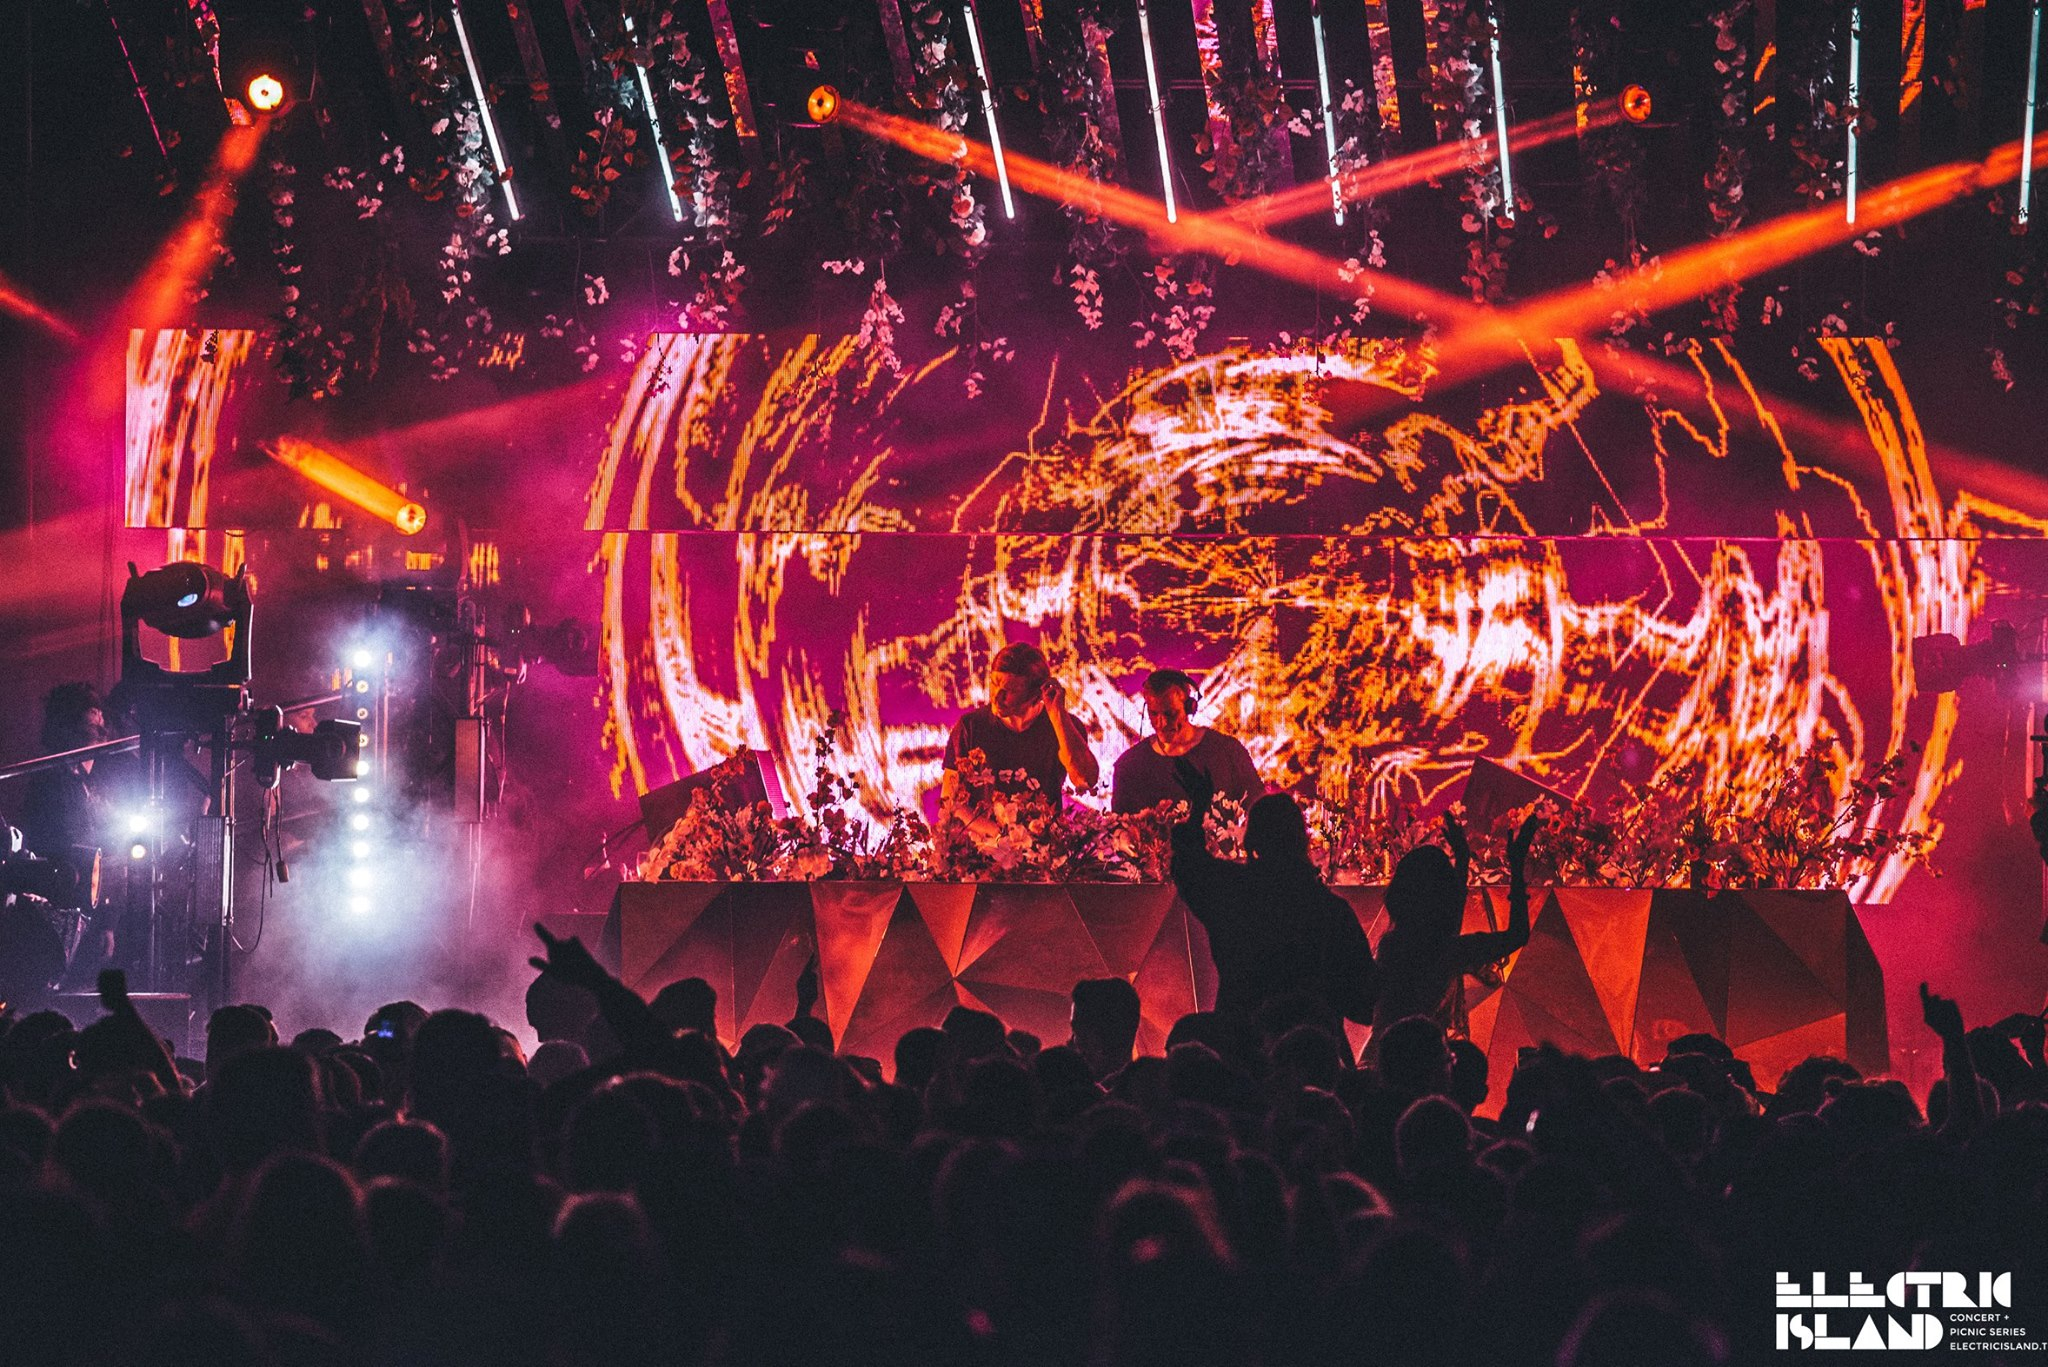 Lighting, Visuals & mirror stage used at Electric Island Canada Day: Ben Klock vs. Marcel Dettmann